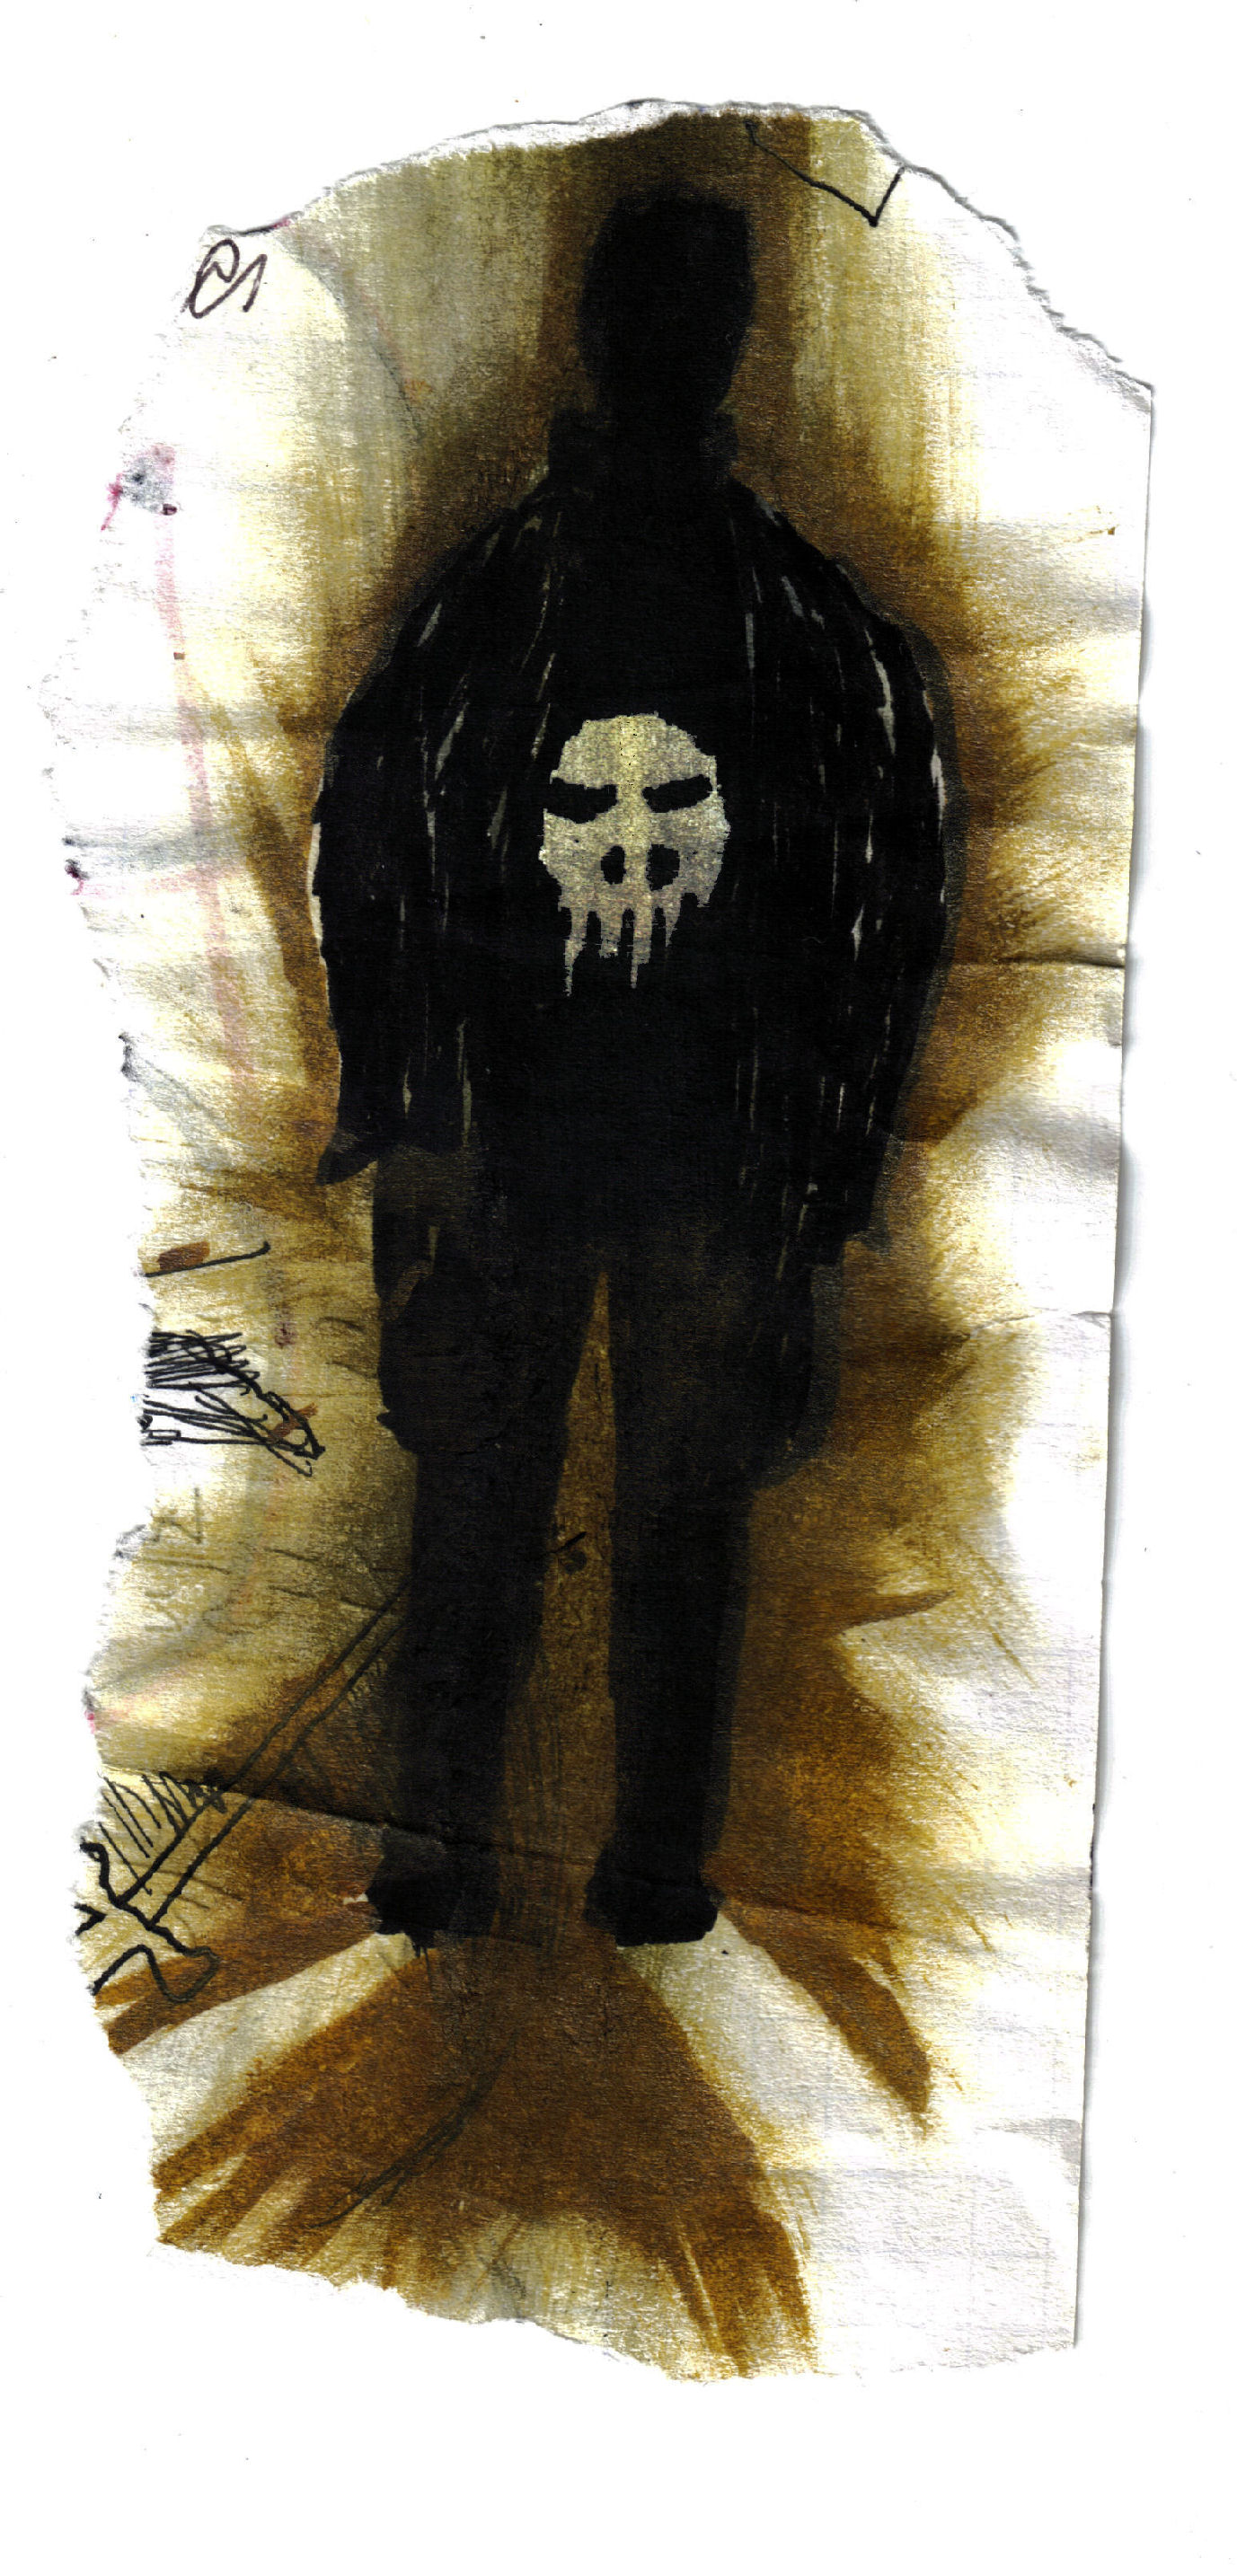 The punisher just by pen